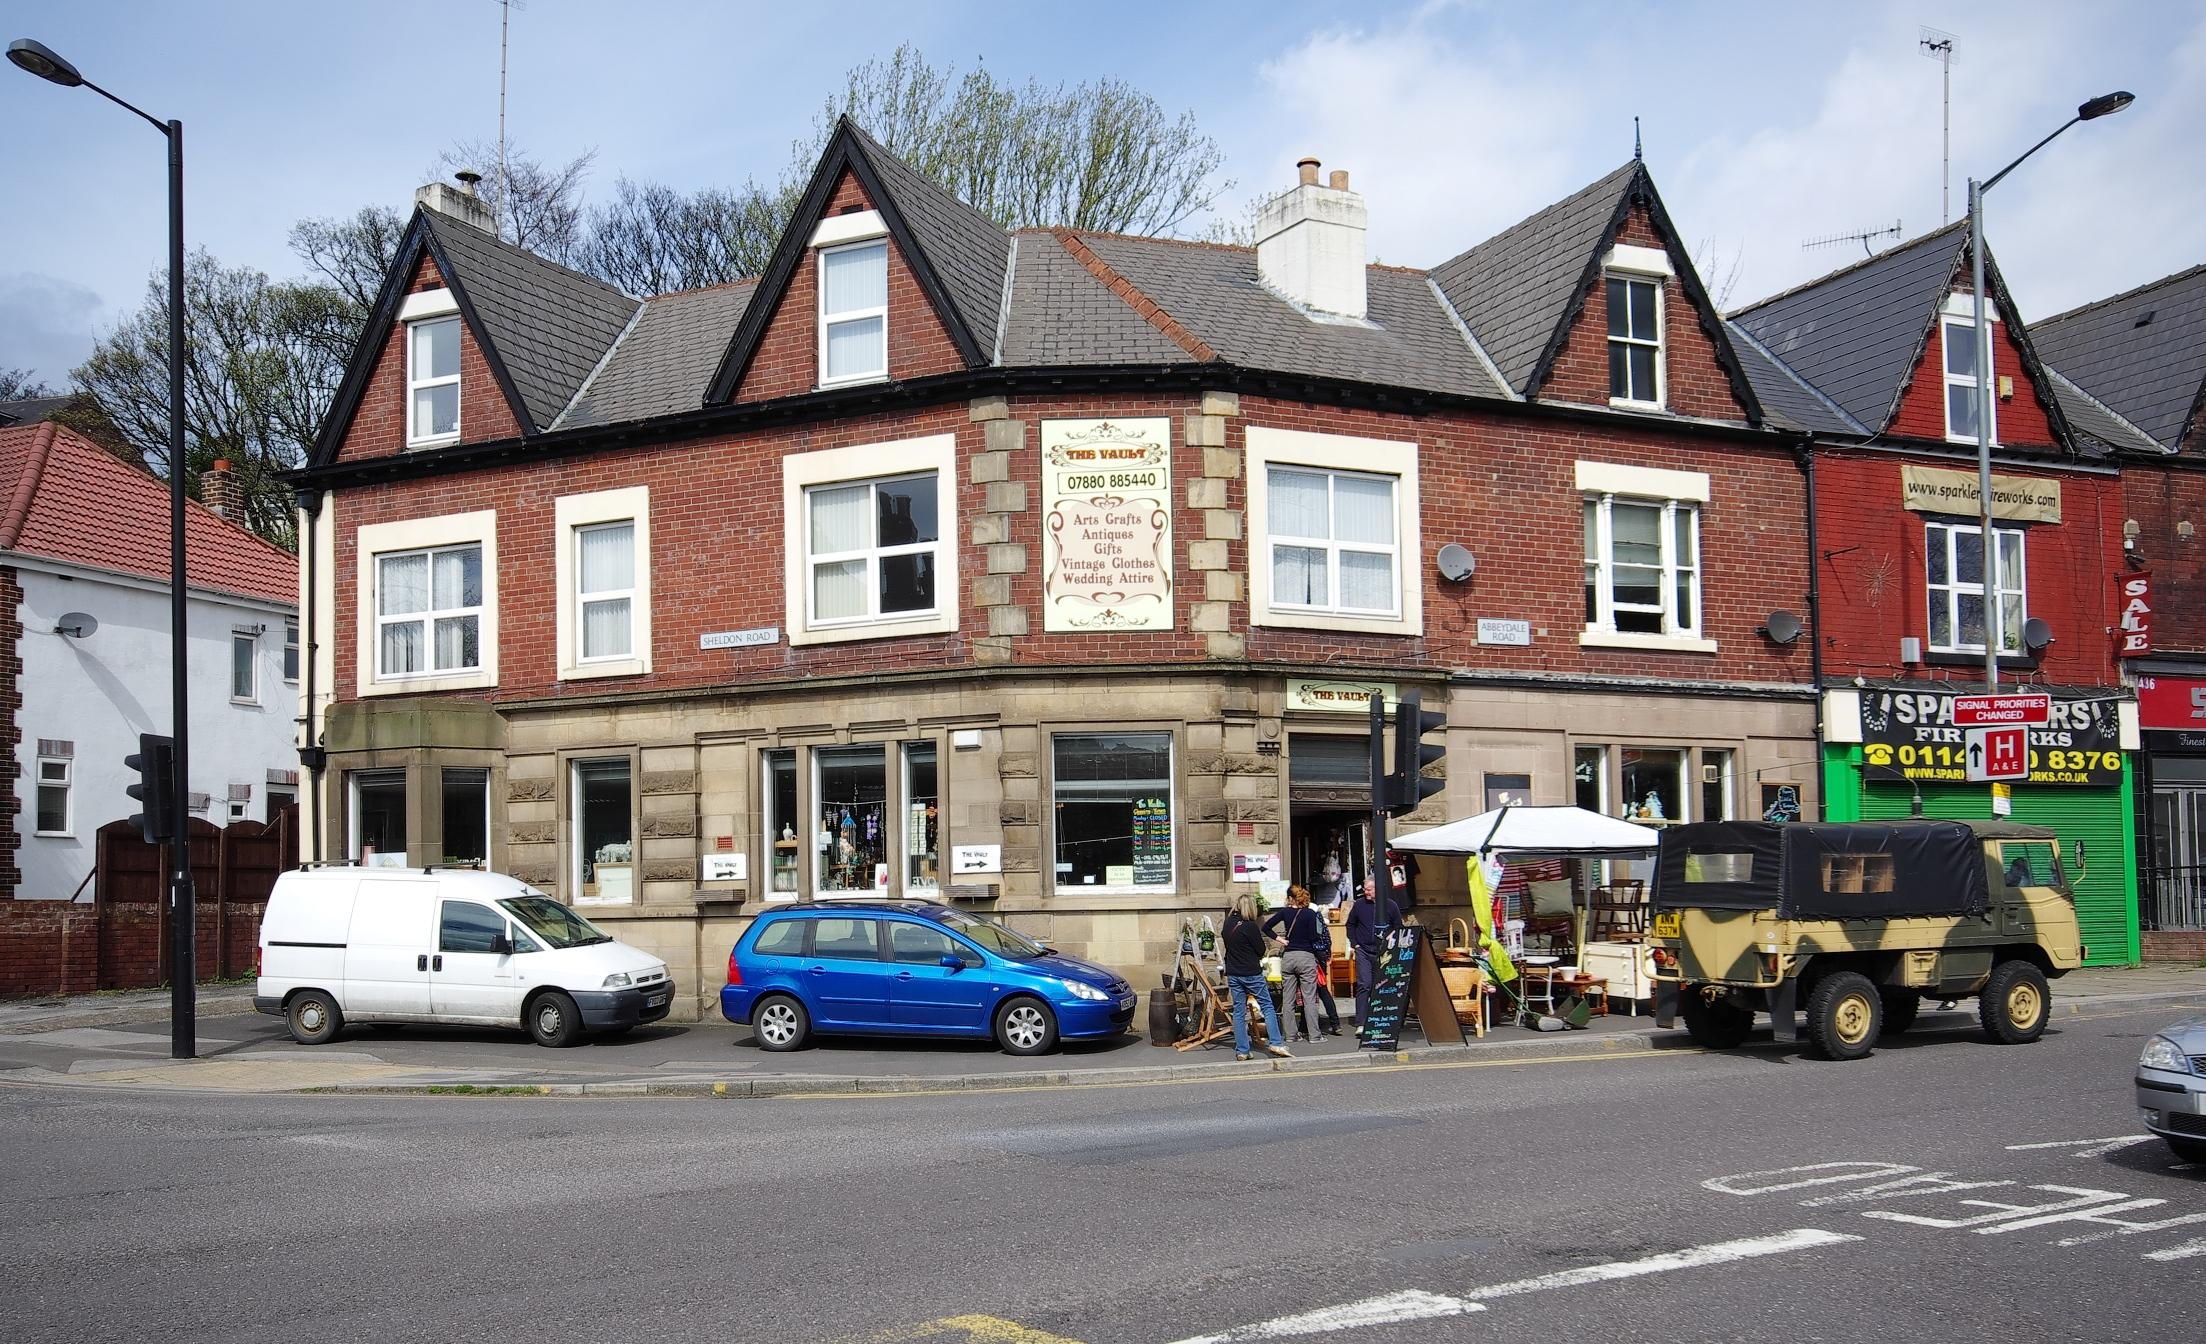 Abbeydale Residential Home